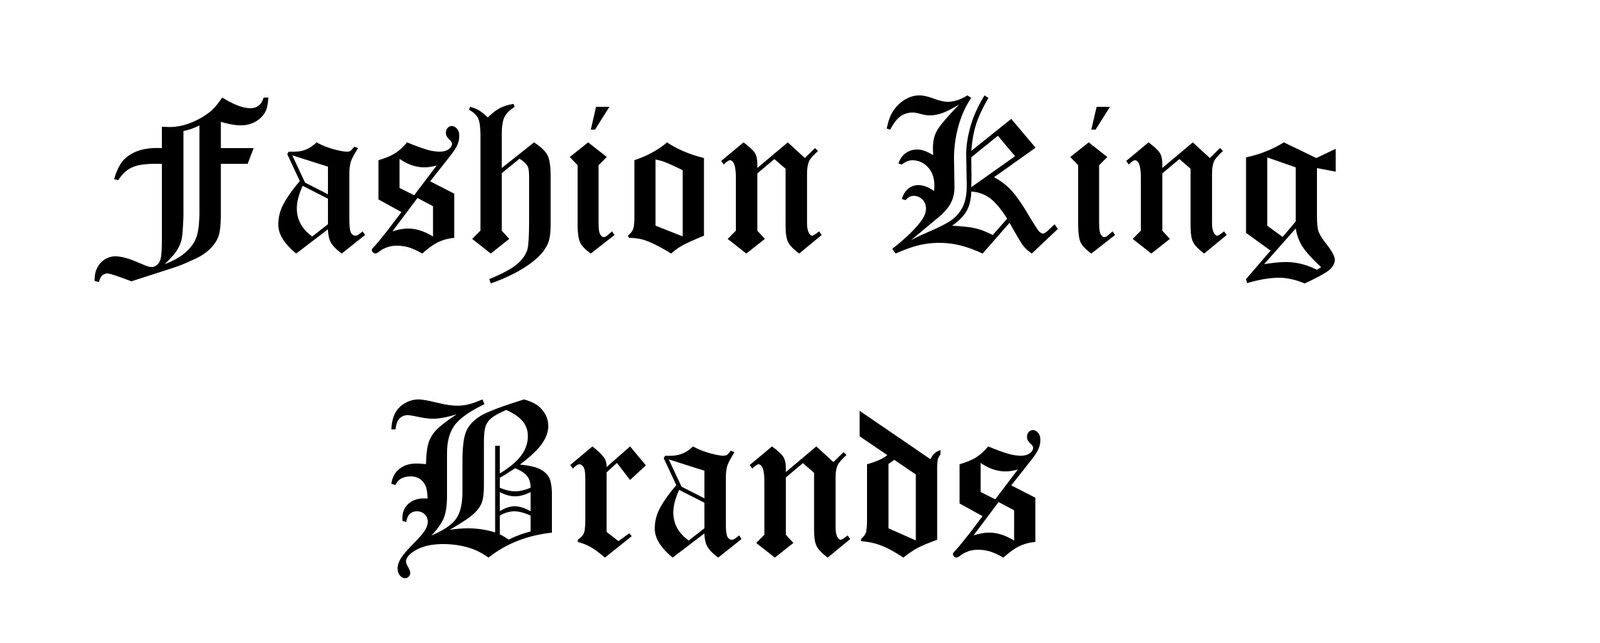 fashion-king-brands